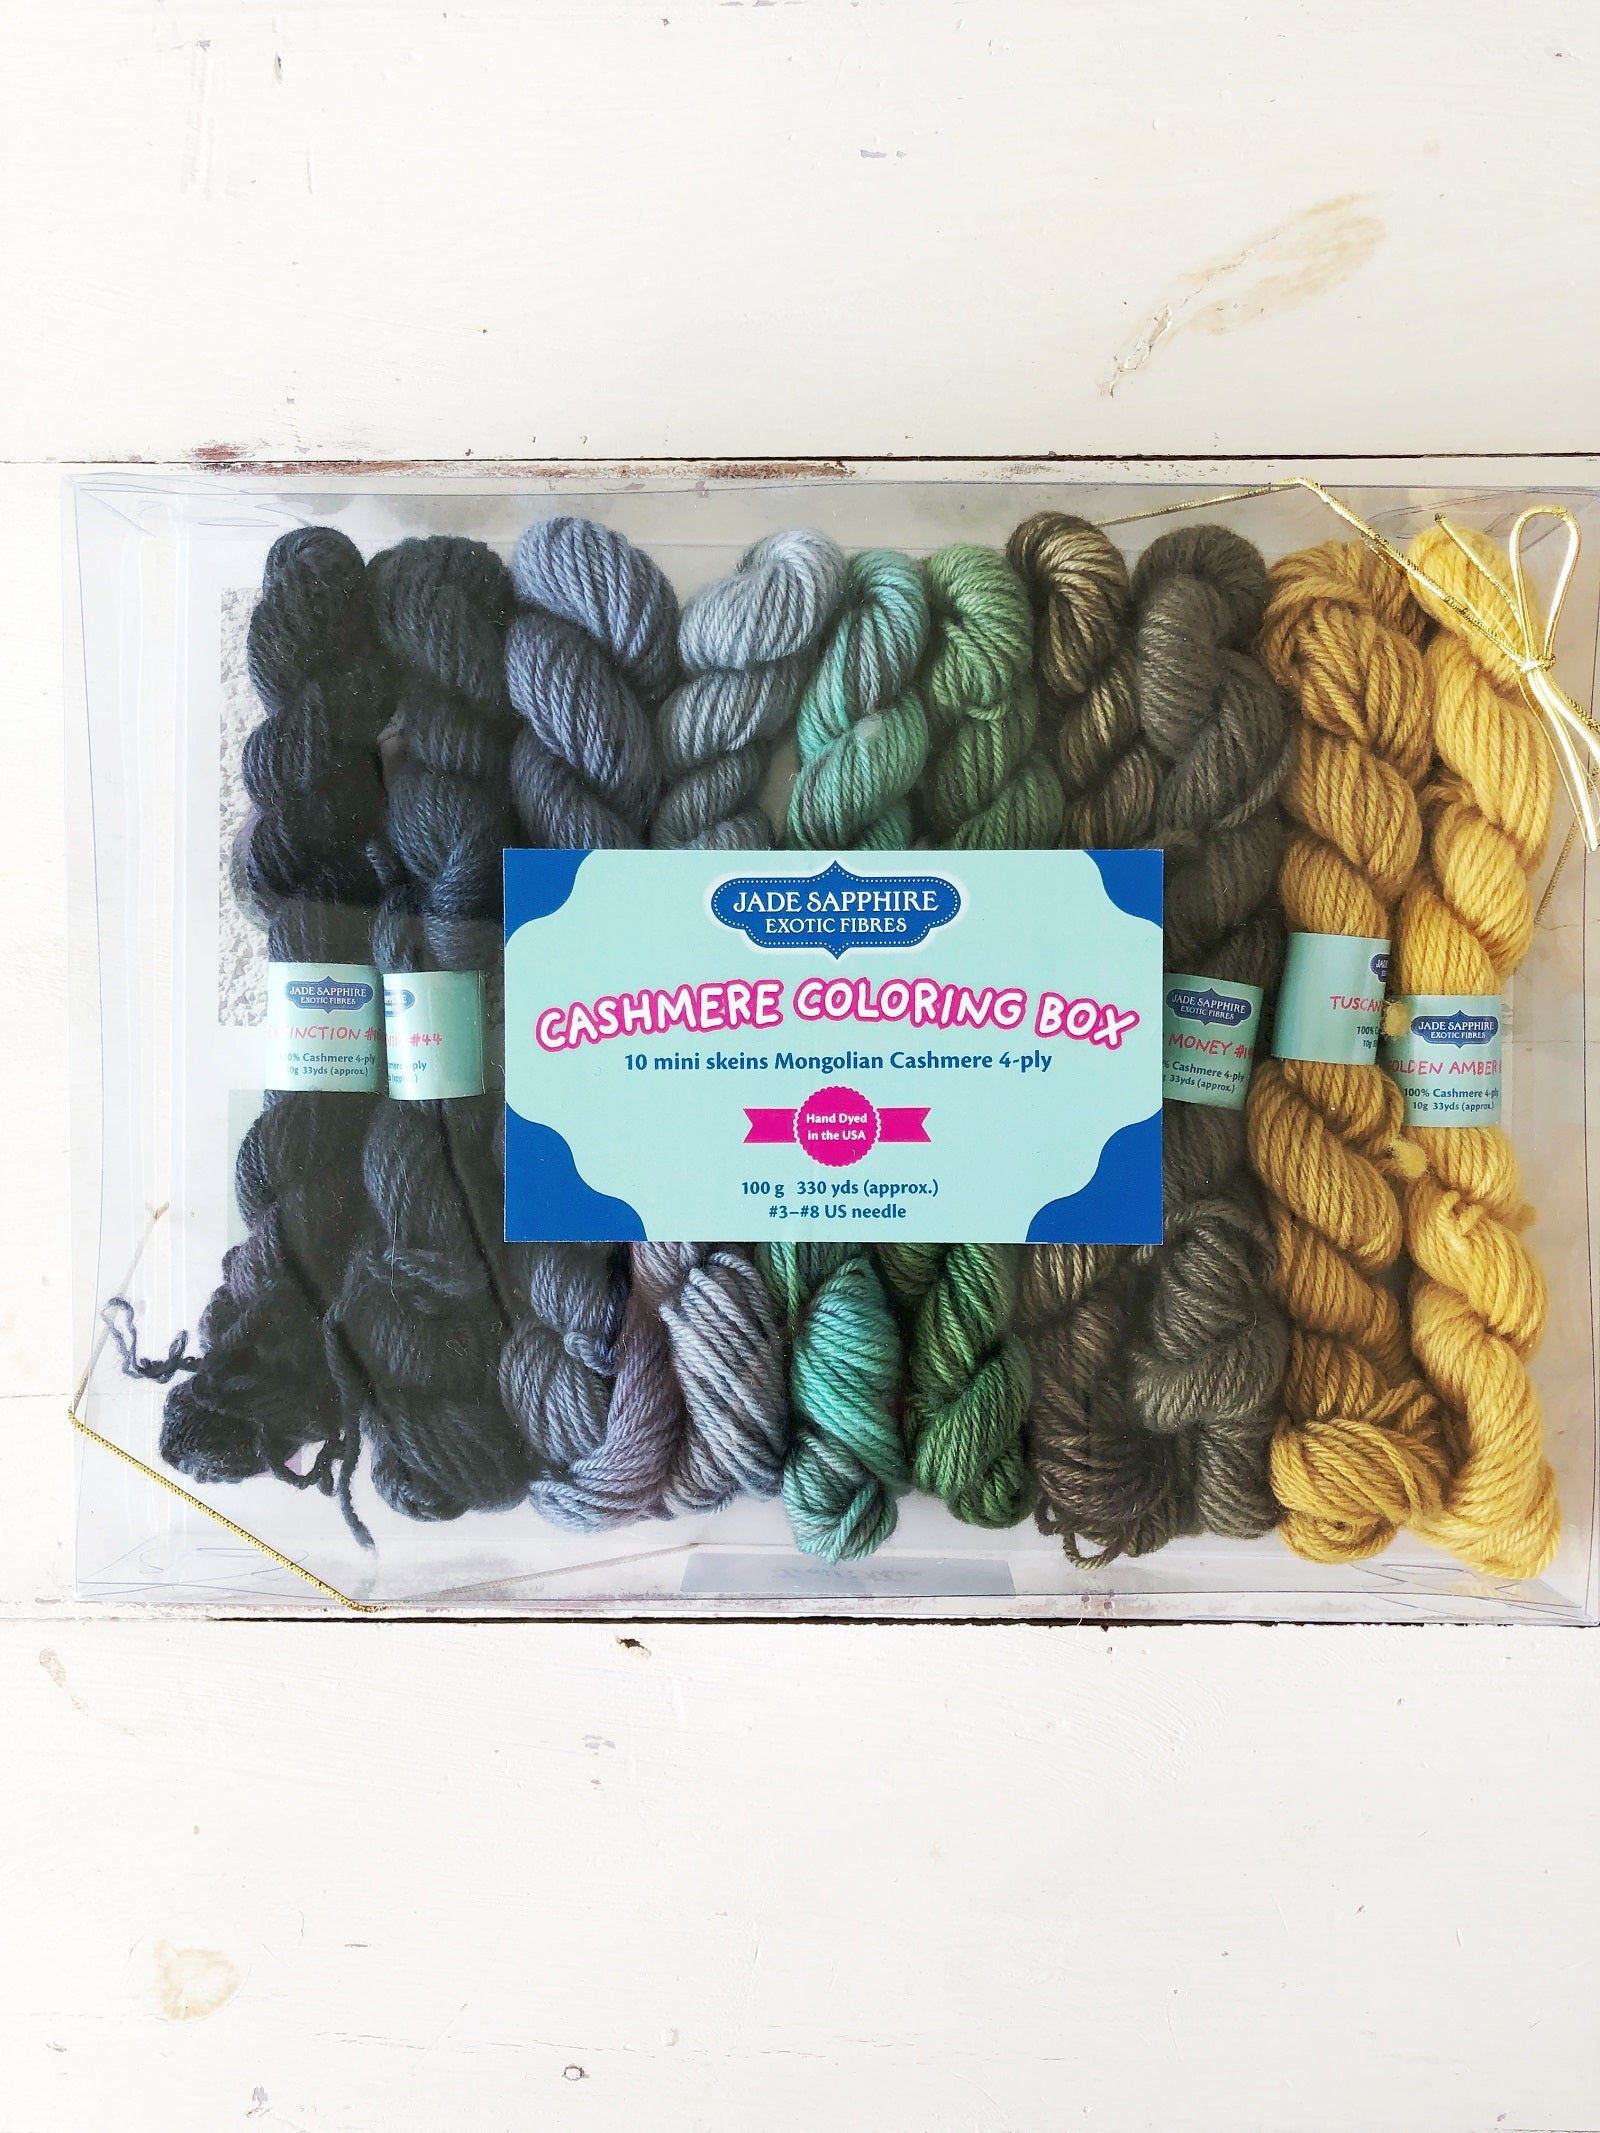 Jade Sapphire Cashmere Coloring Box Kit (5 Color ways to choose from)